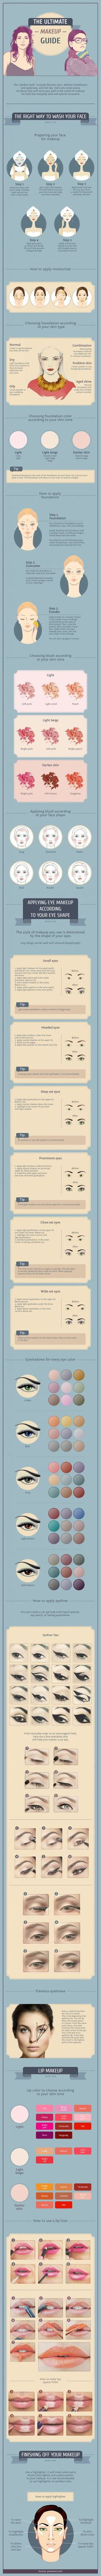 Step-by-step directions to enable you to attain an completely flawless look.....  See even more by checking out the image